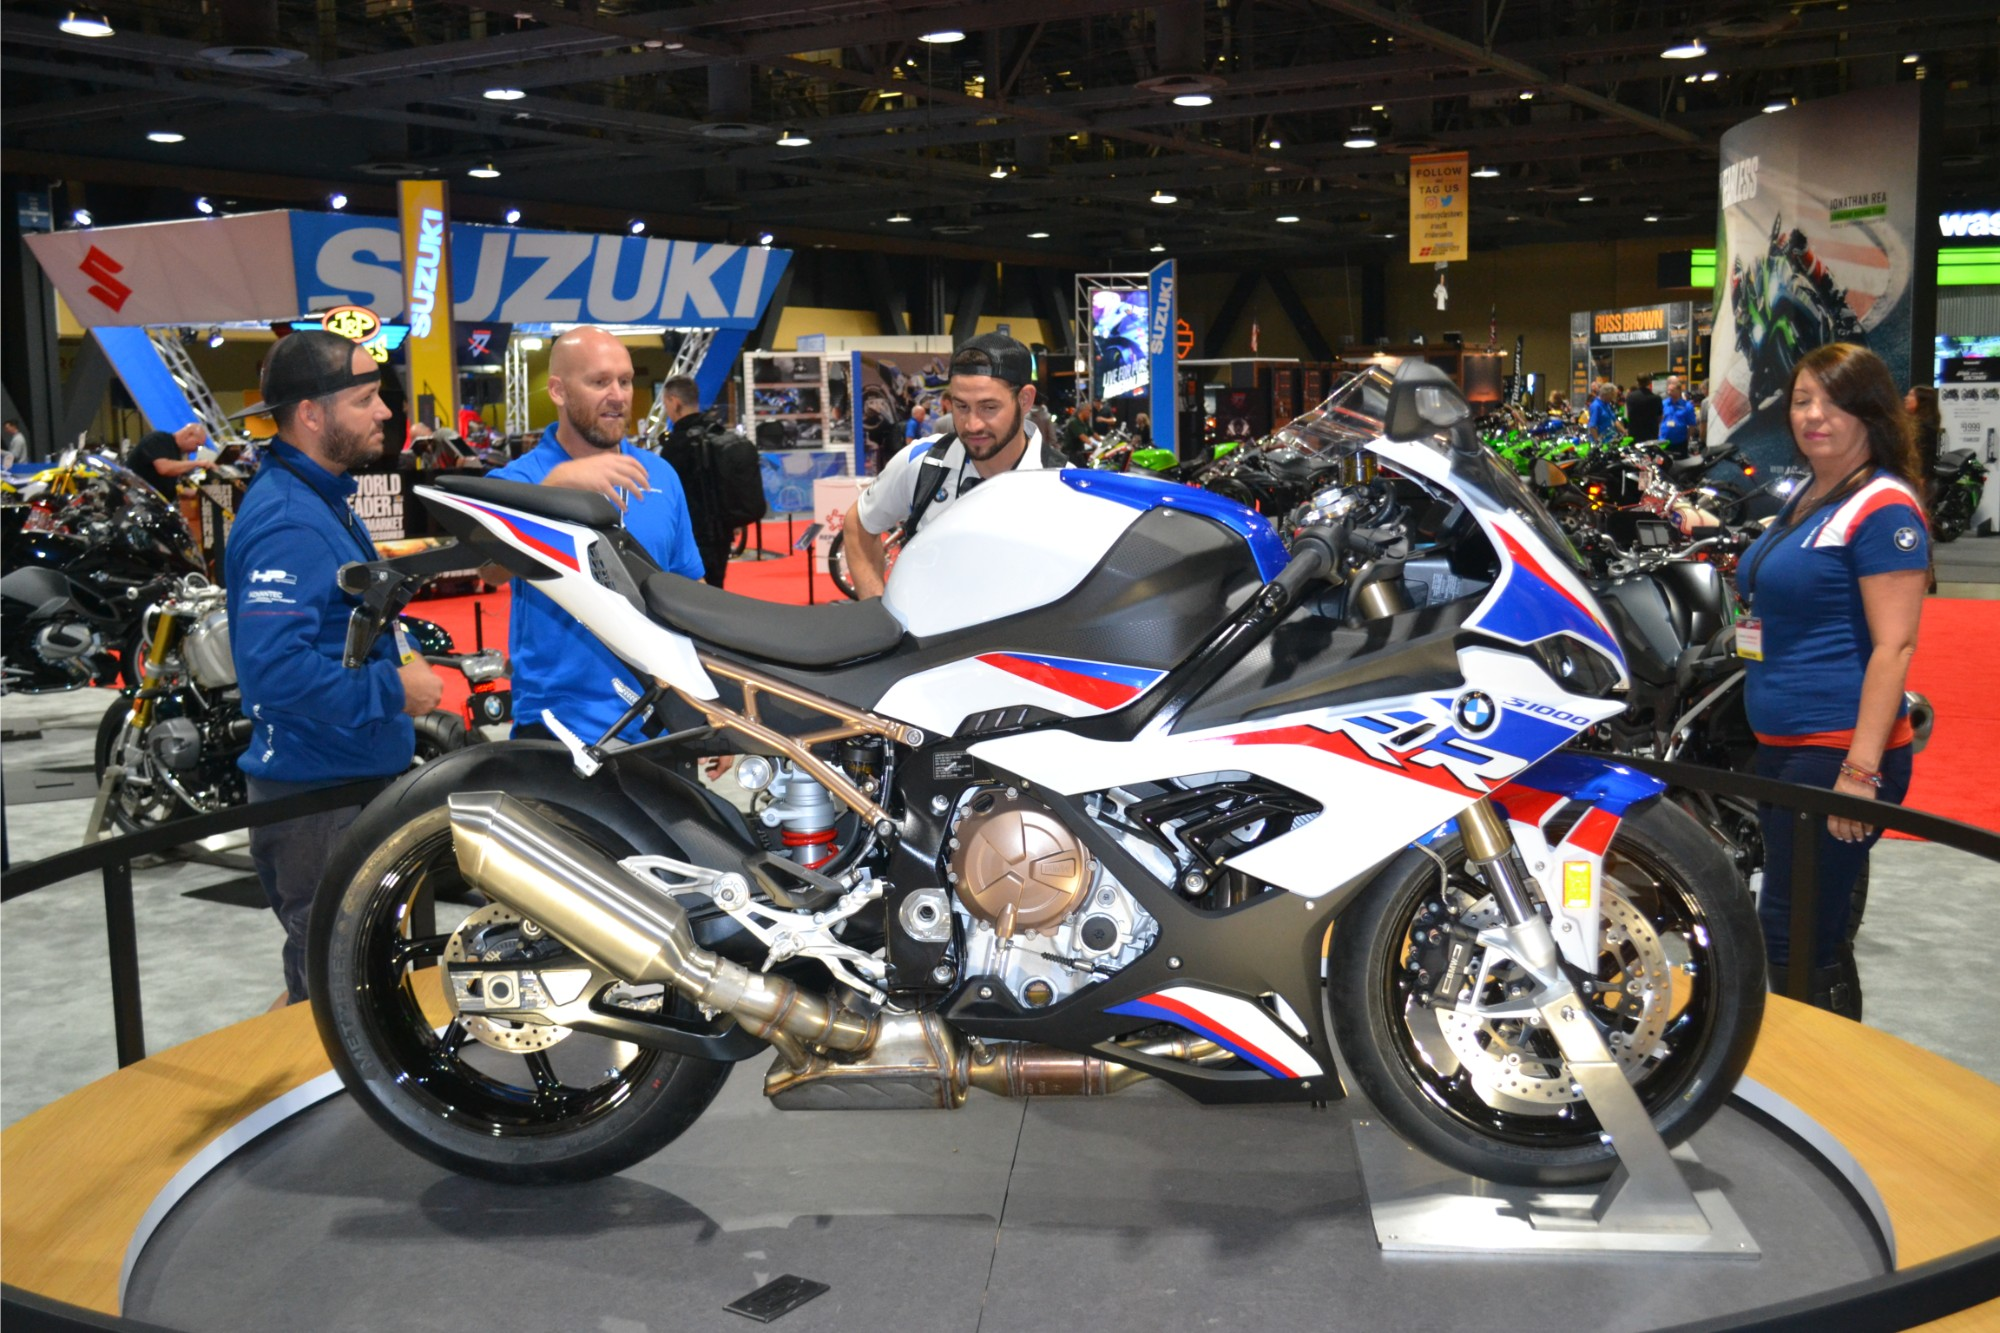 Canadian Superbike Alex Welsh To Compete On 2020 Model Bmw S1000rr At 2019 Season Finale Roadracing World Magazine Motorcycle Riding Racing Tech News